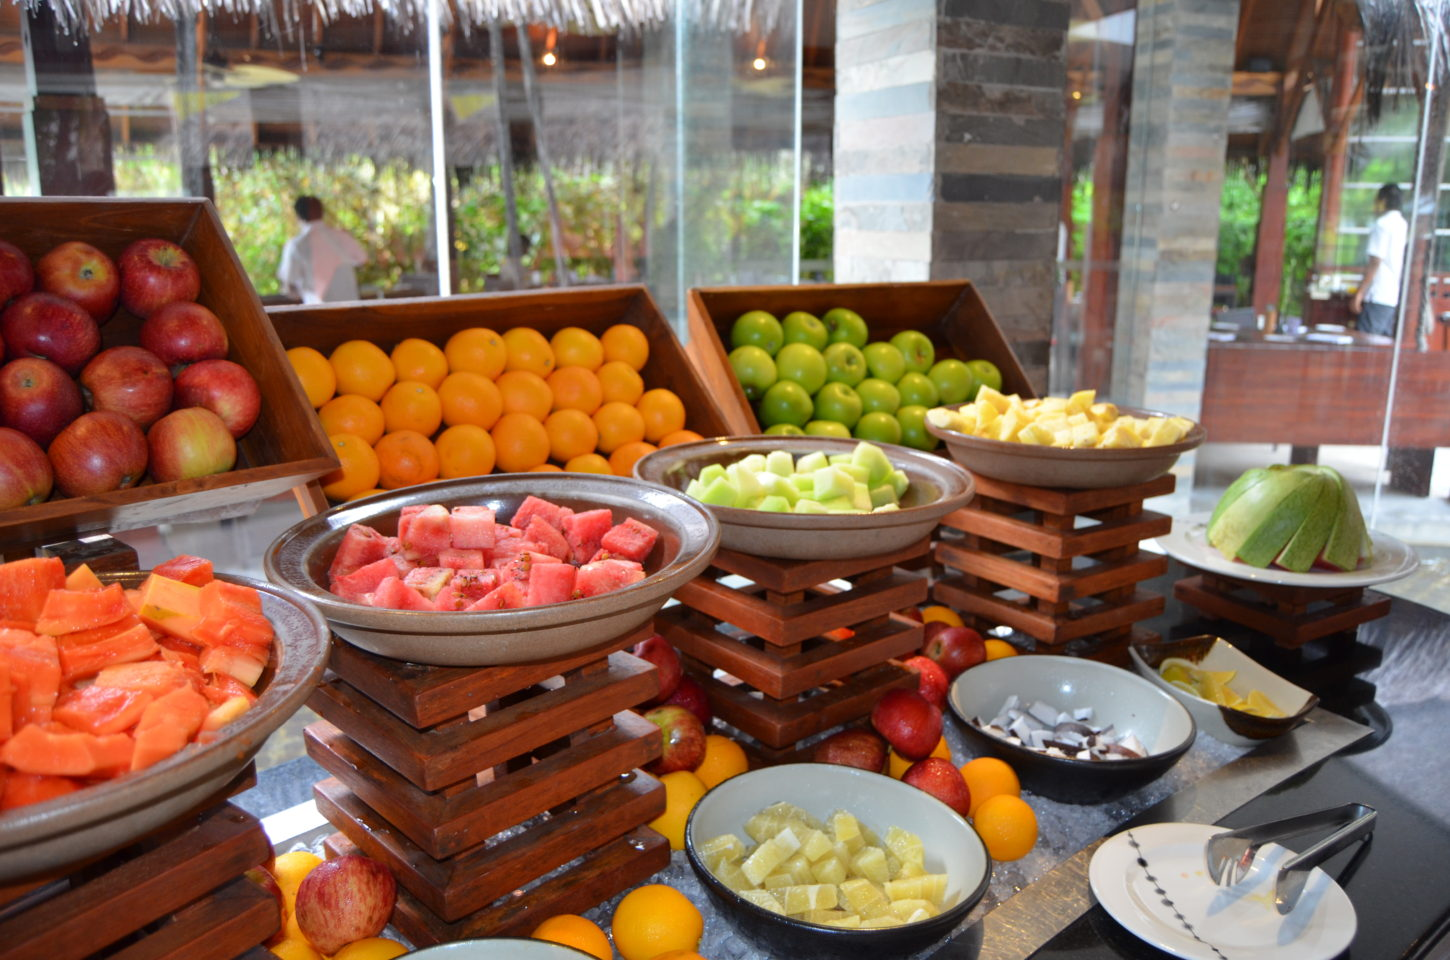 Another level of freshness at the Fushi Cafe fruit stand